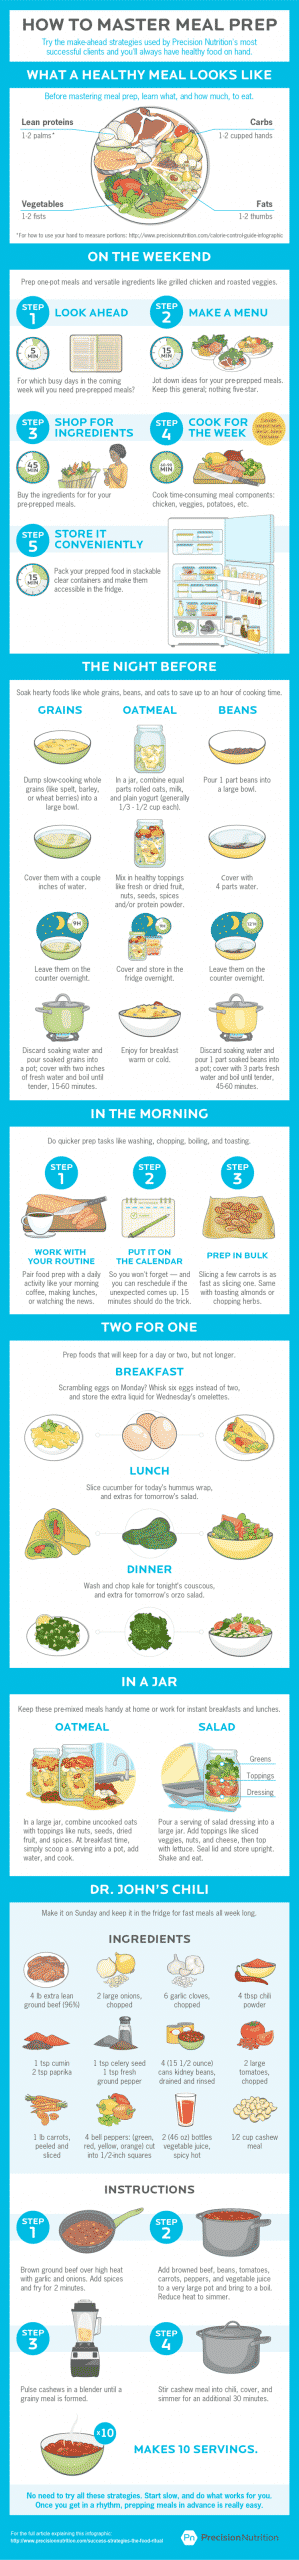 How to master meal preparation